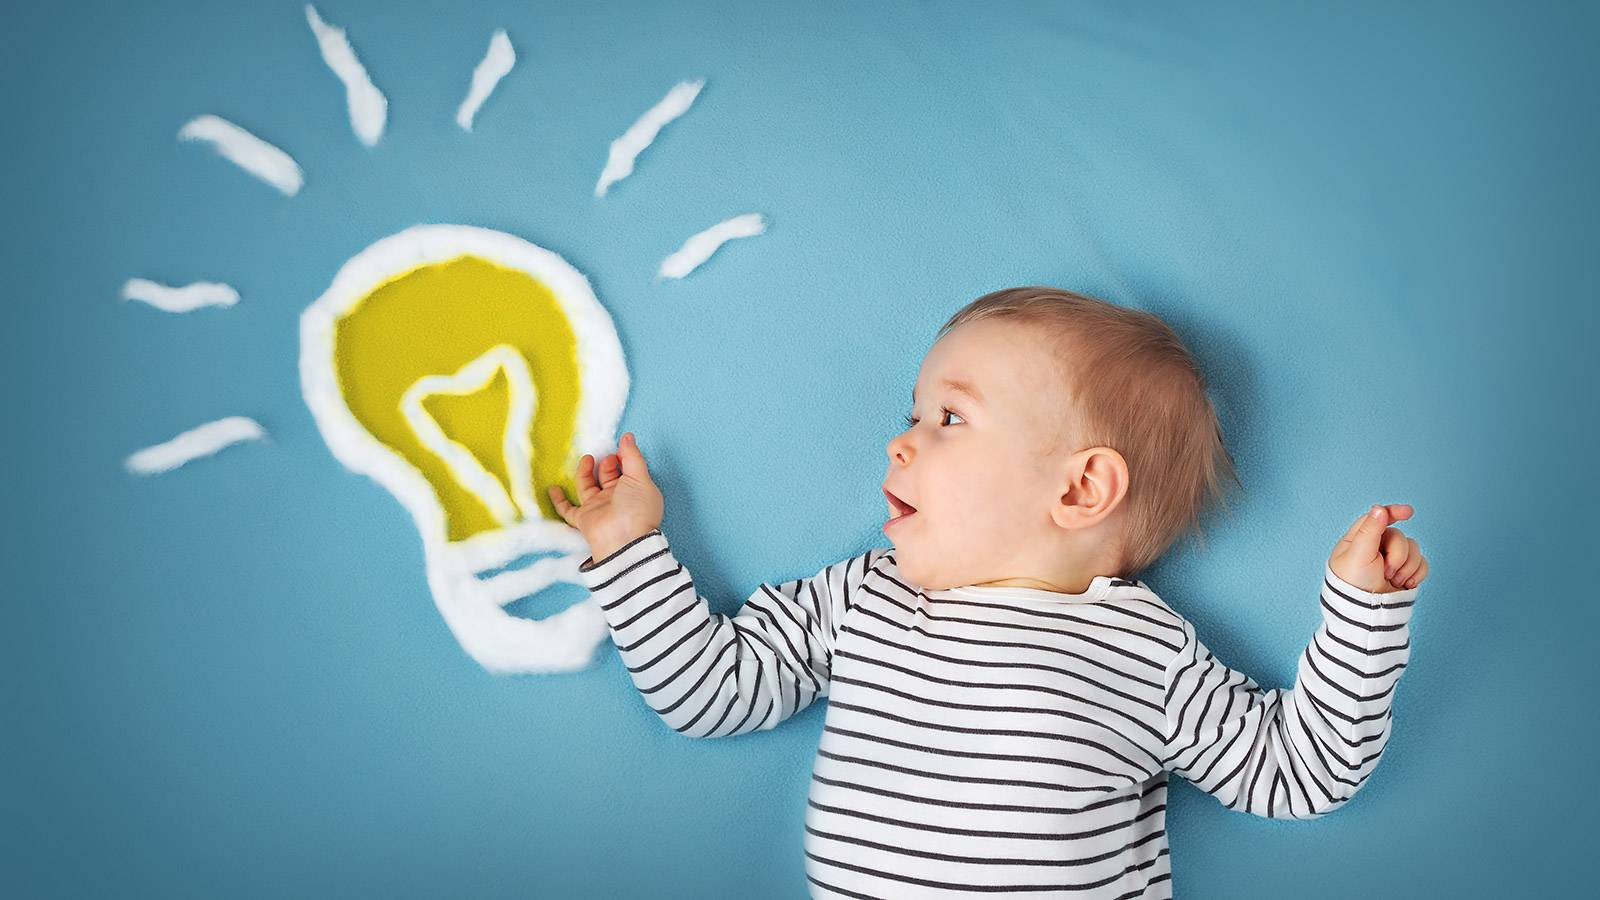 image-10515974-37ceba8d5f9a1fa9ddfc00723264125b-babies-8-amazing-things-you-never-knew-about-your-baby-s-brain-1_3